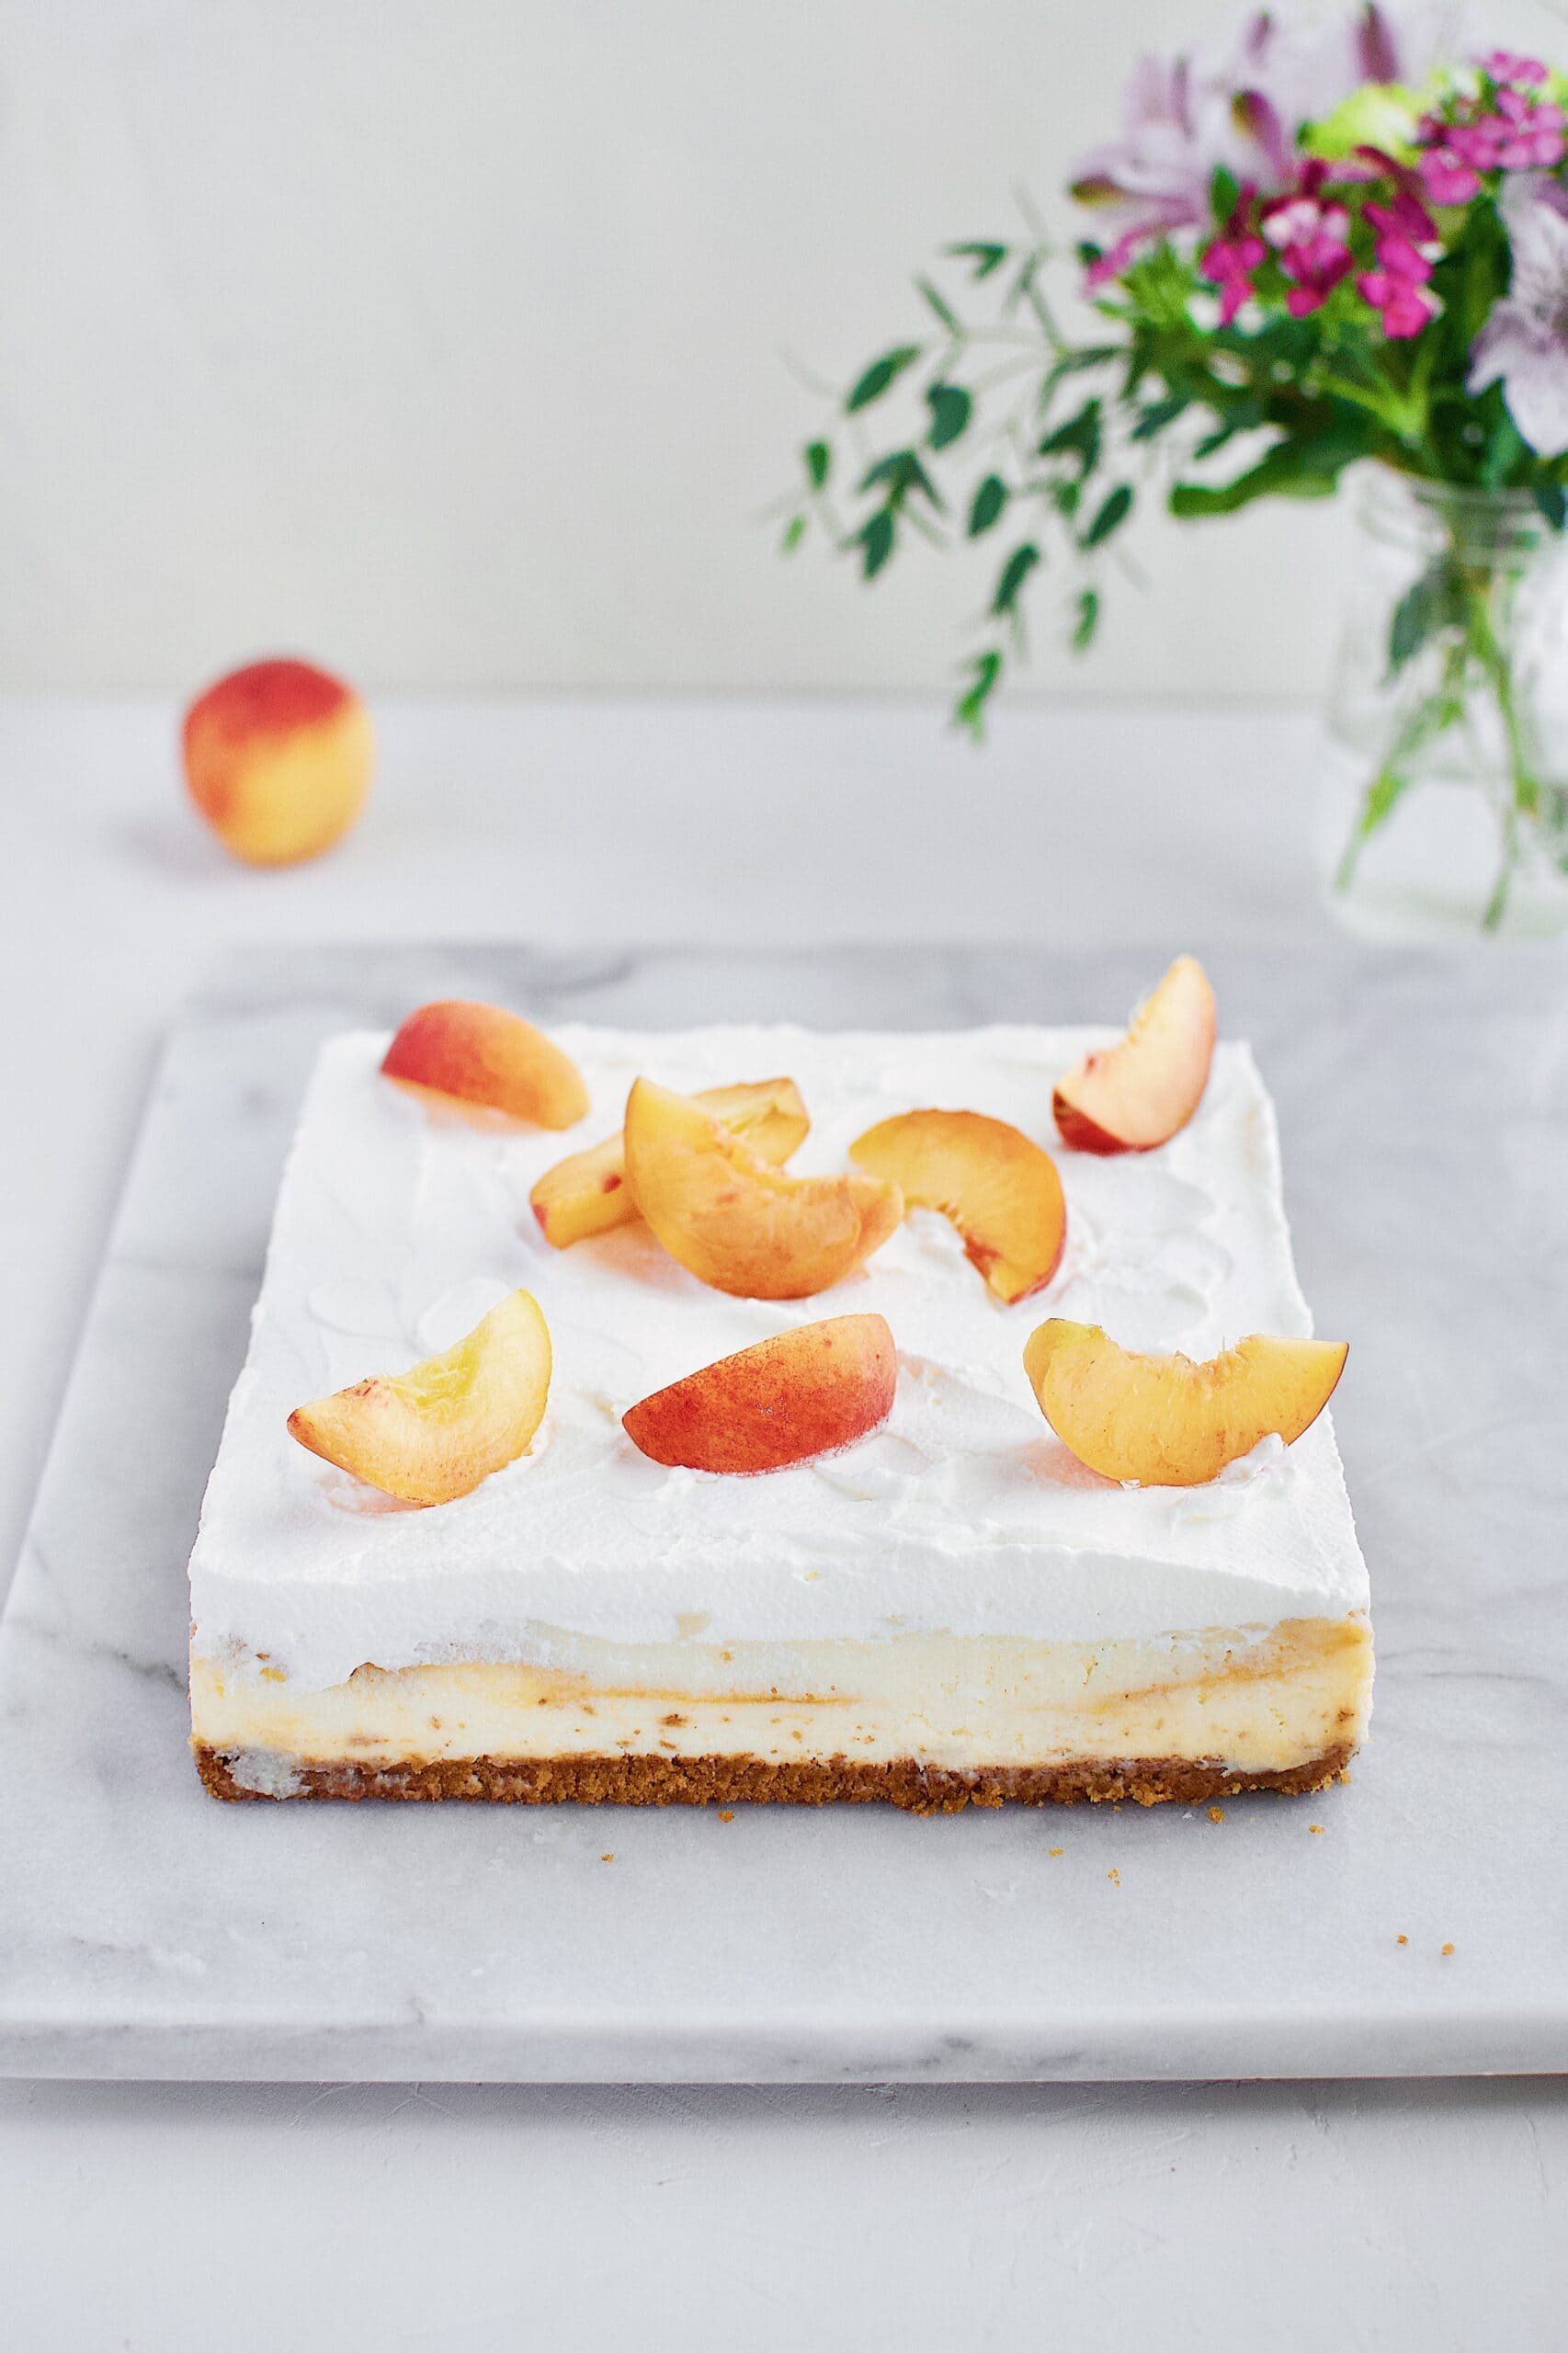 Peaches and Cream Cheesecake